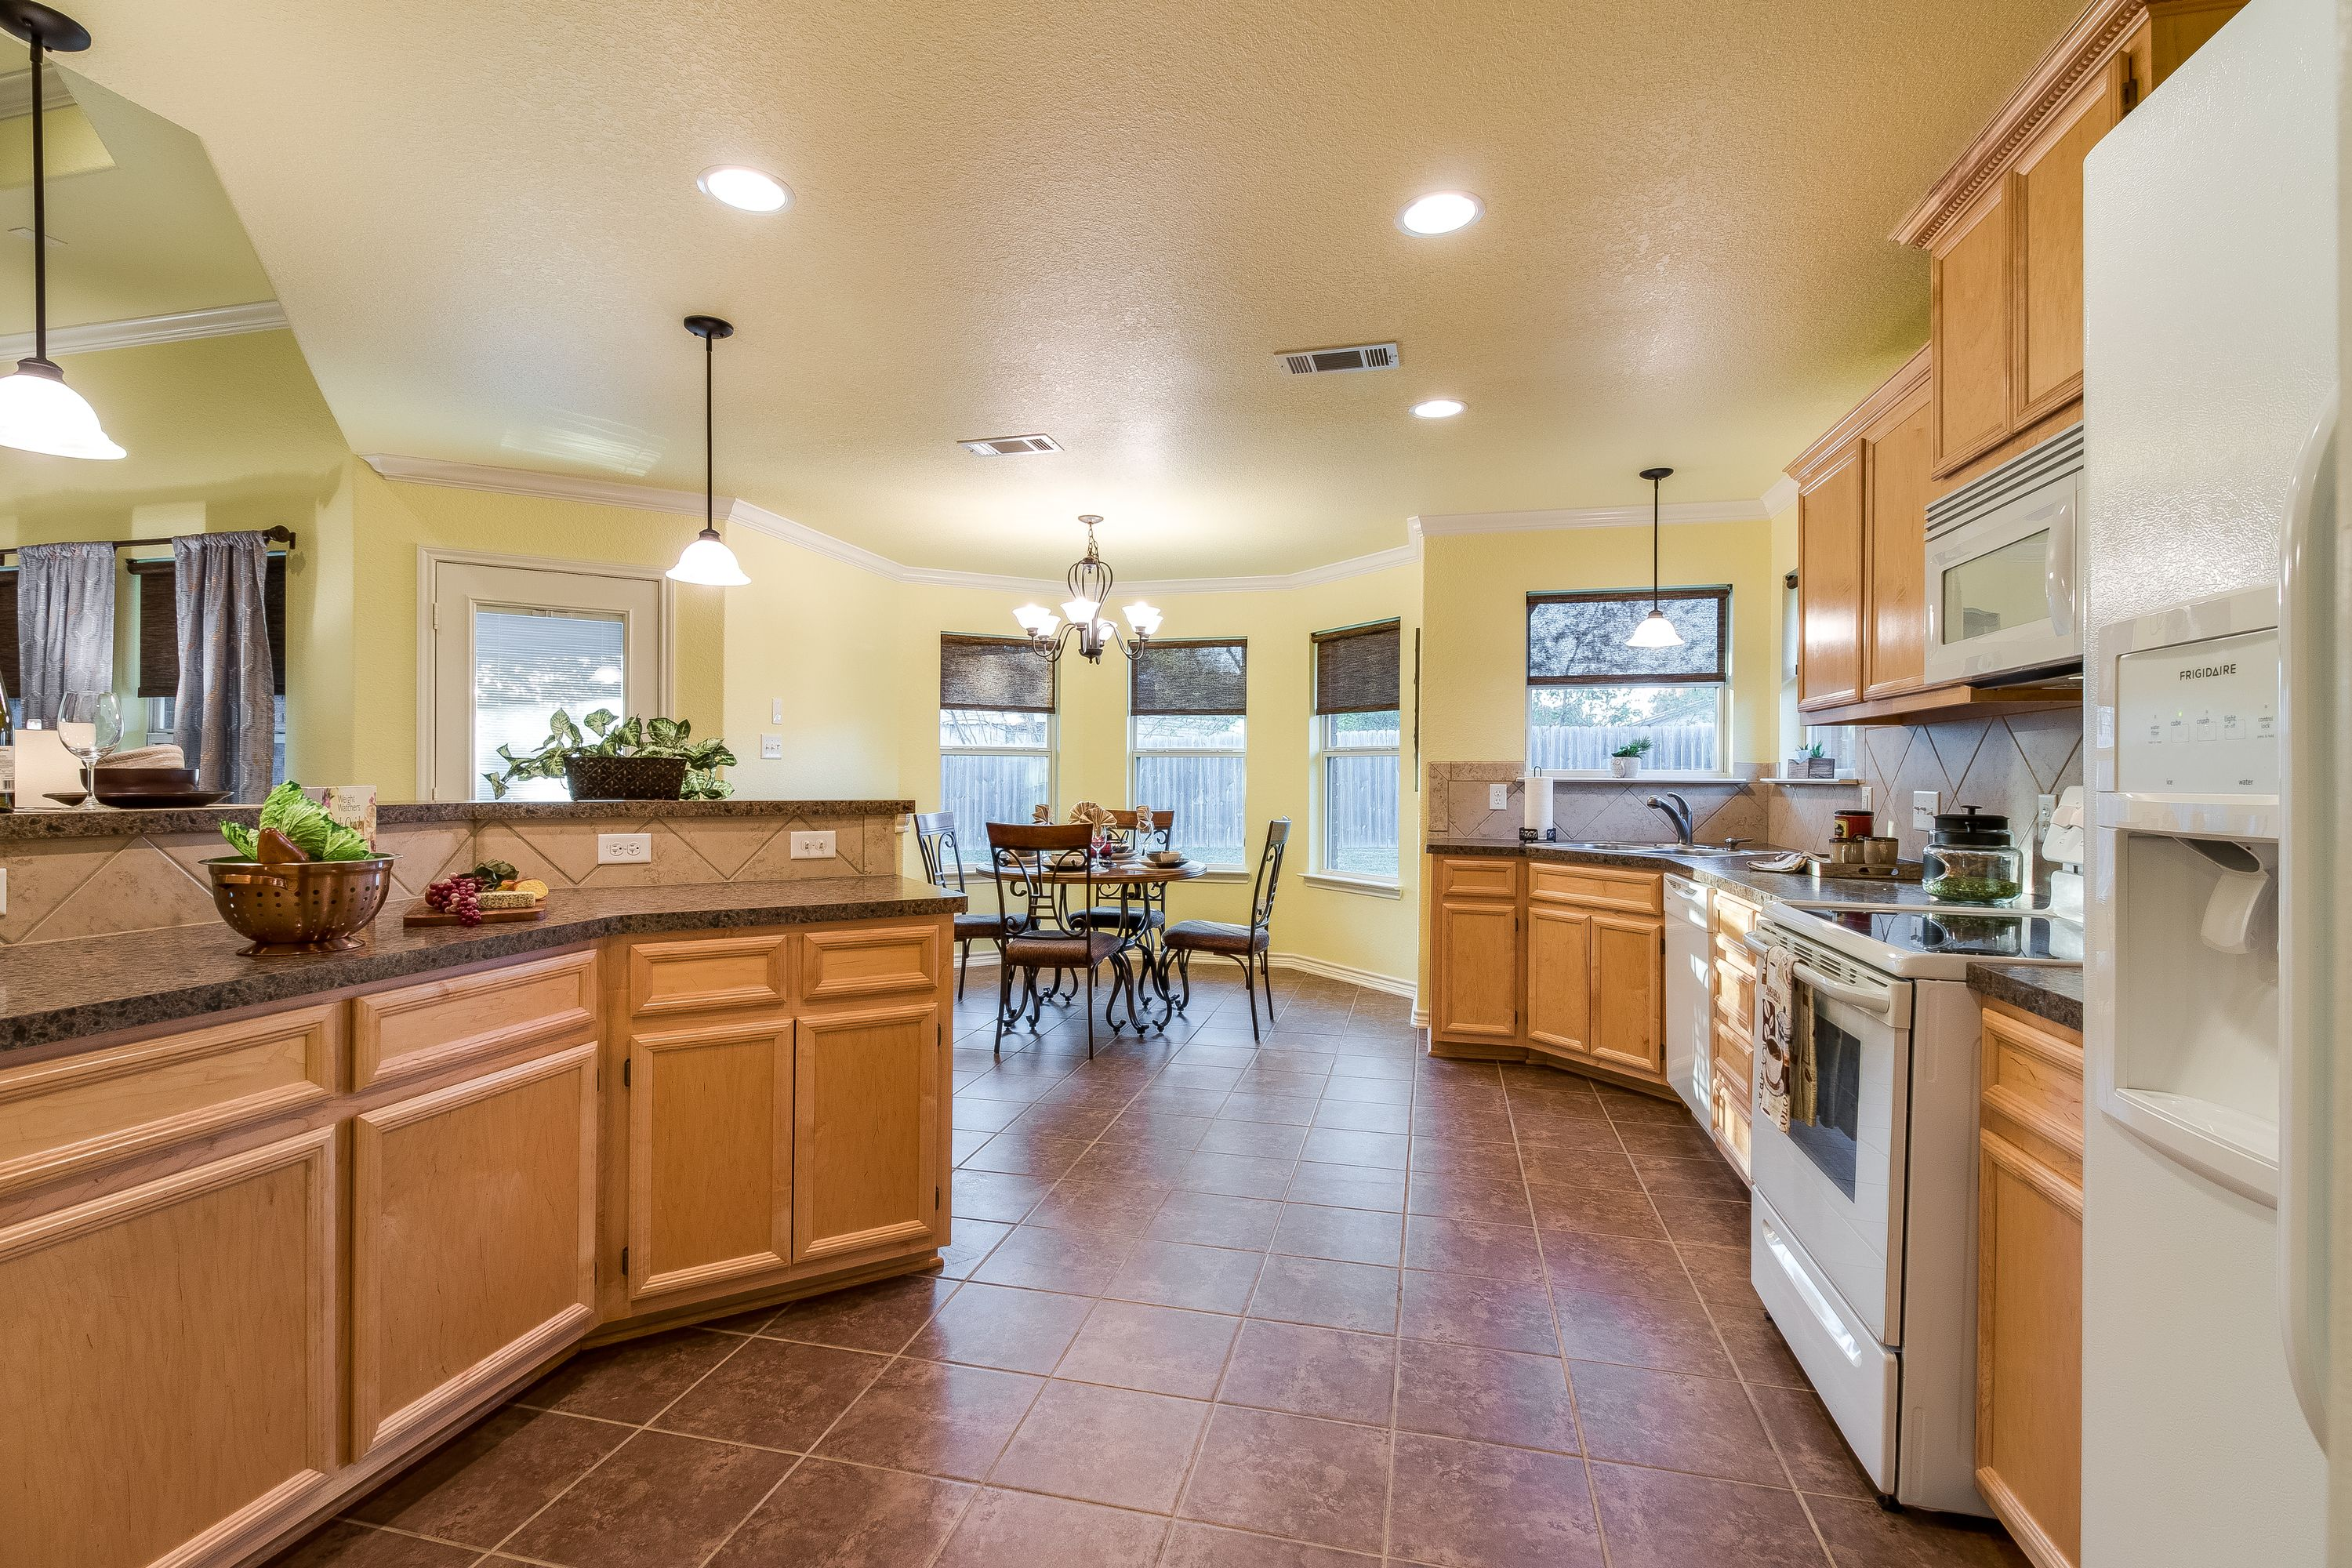 Pin By Holly D On 6901 Deorsam Loop Killeen Tx Home Decor Kitchen Decor